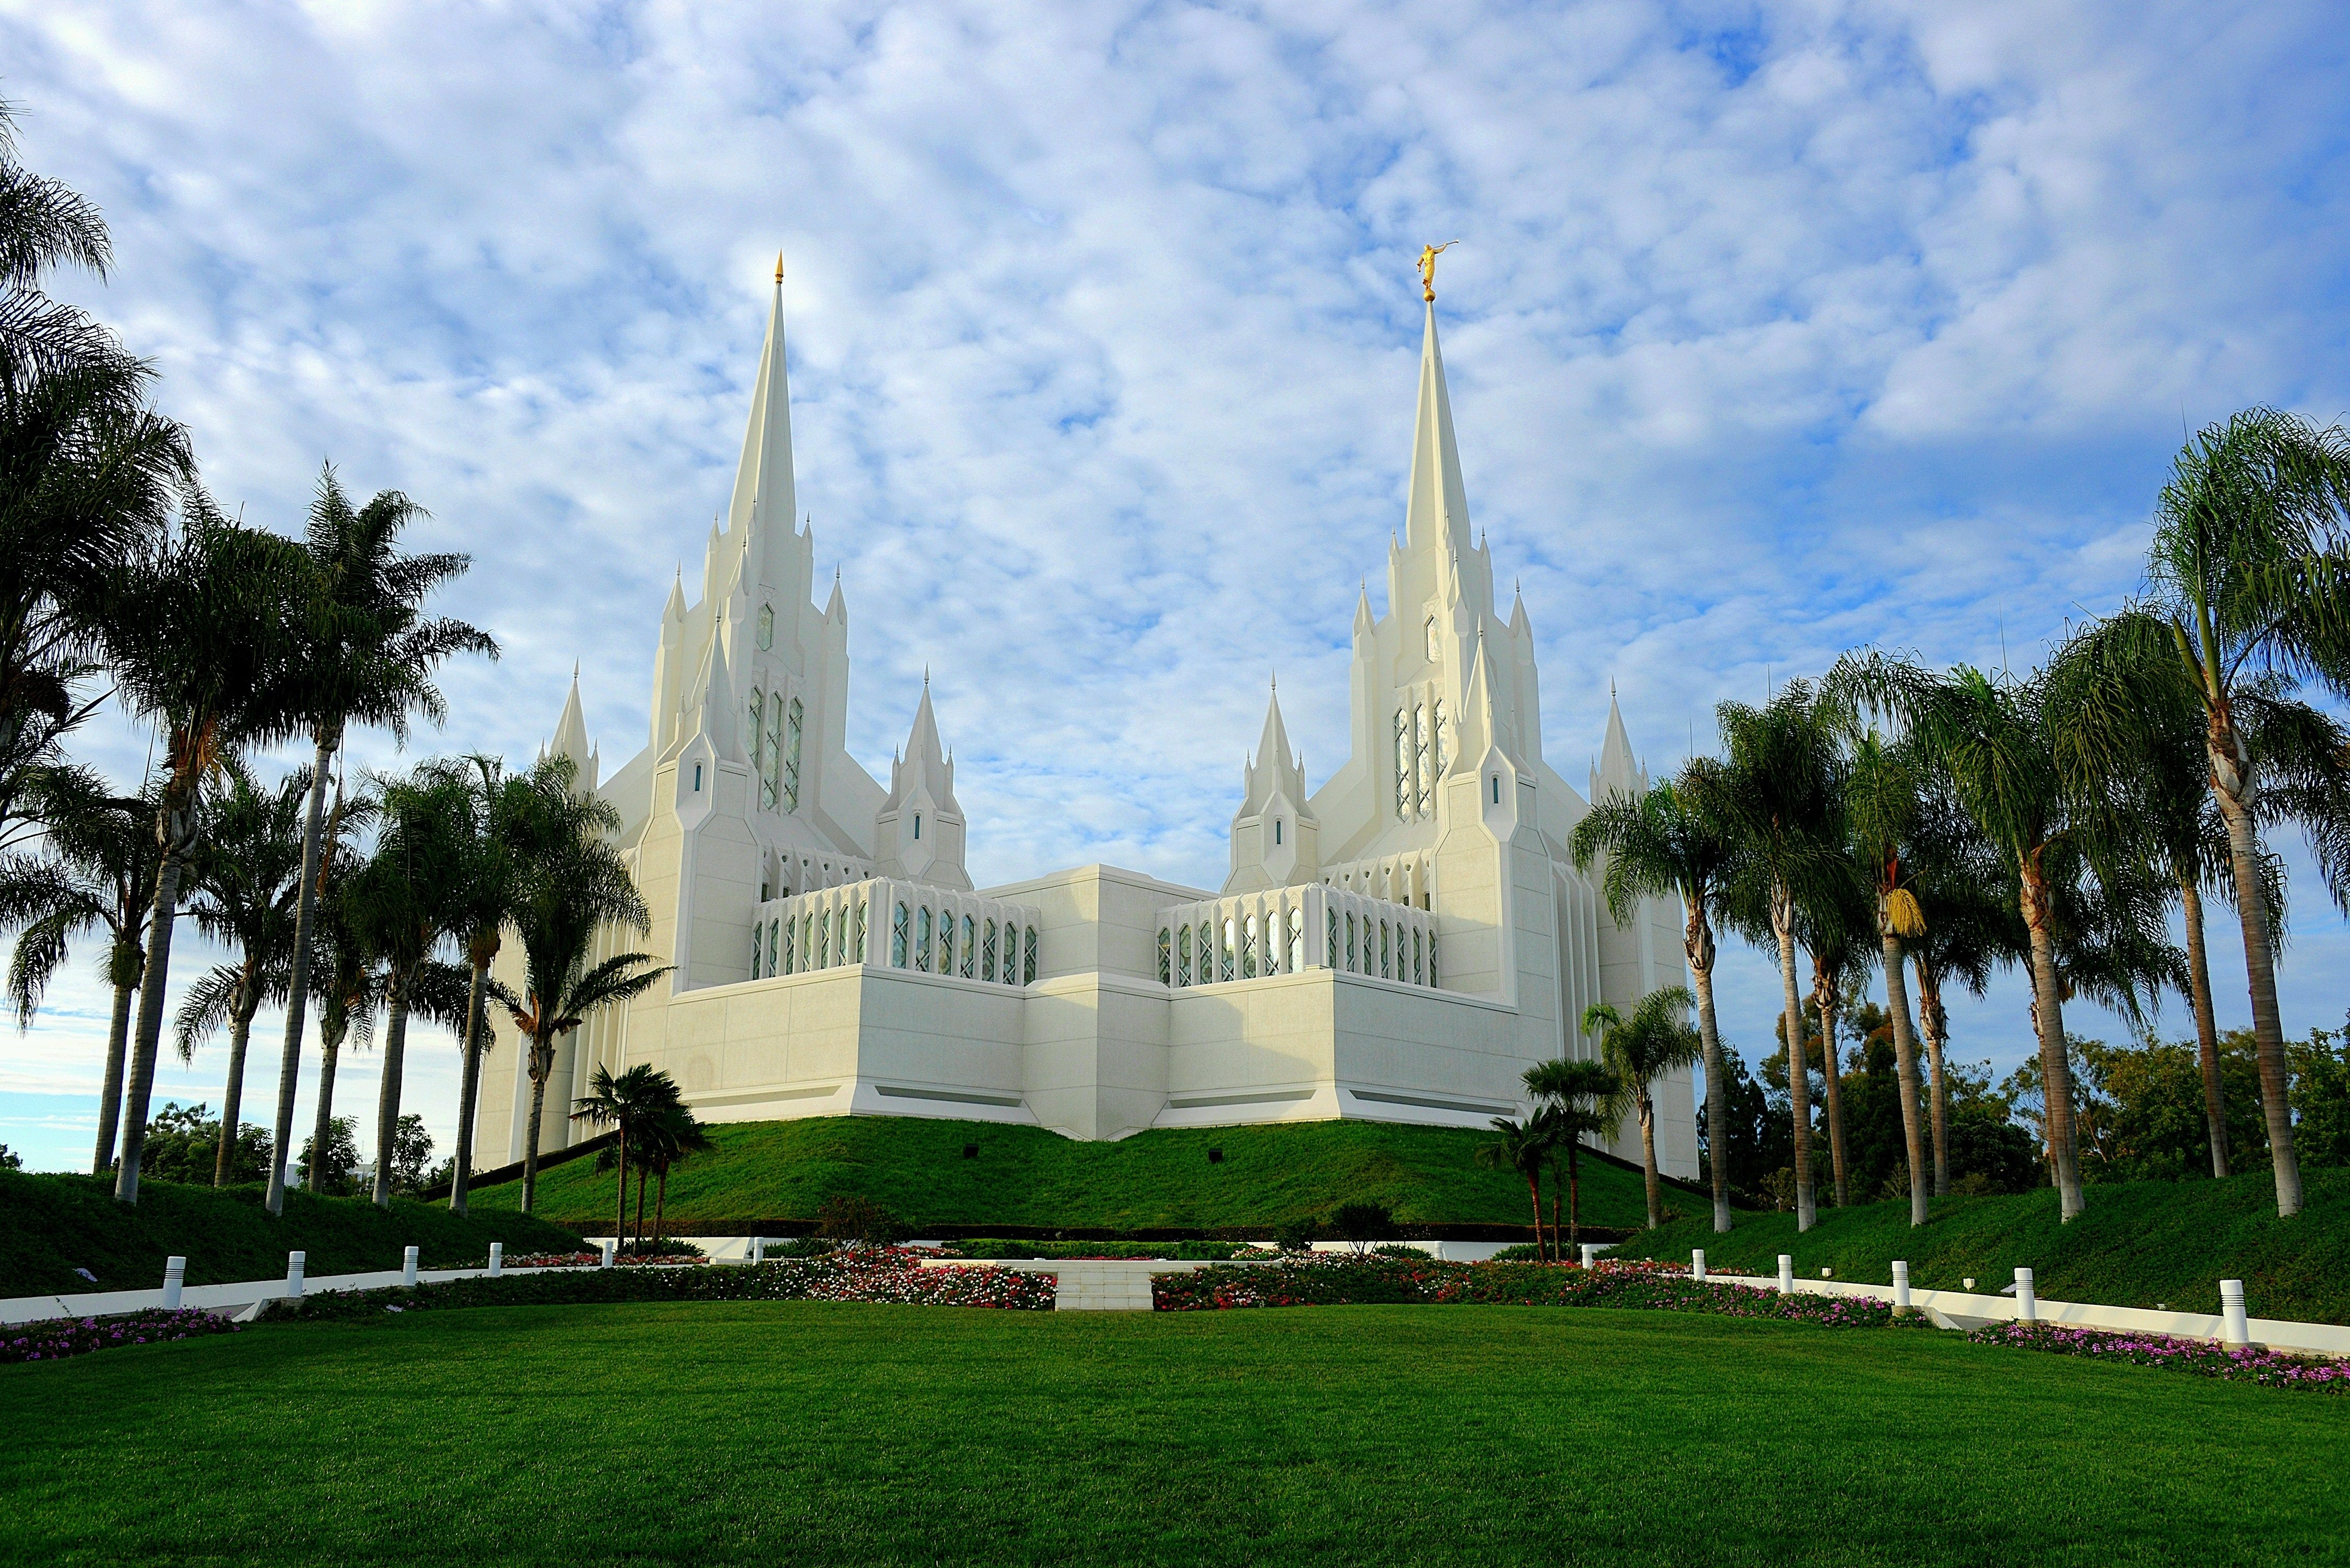 The San Diego California Temple and its lawns on a partly cloudy day.